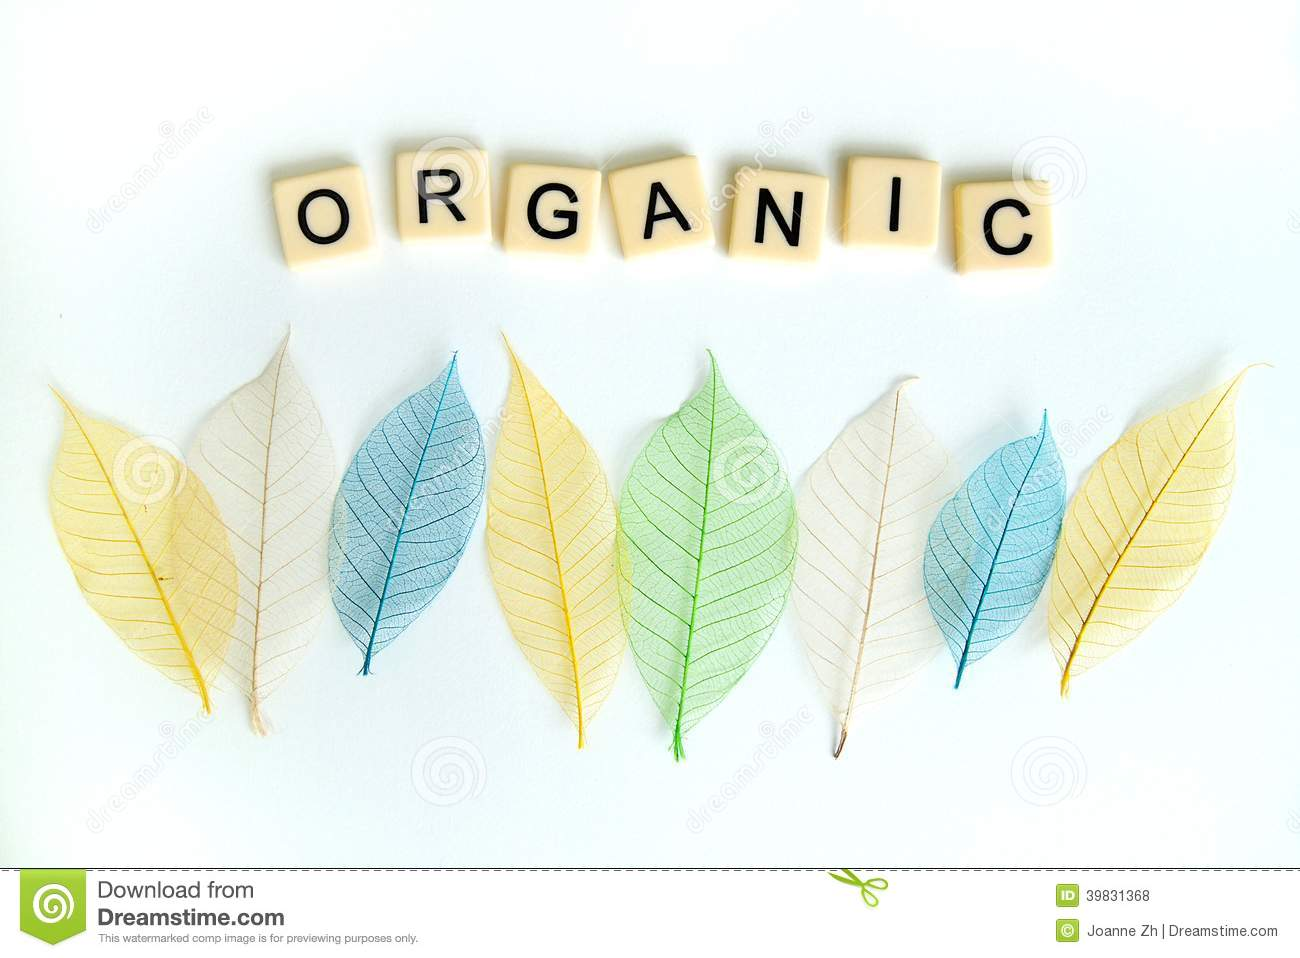 Organic concept with dried leaves